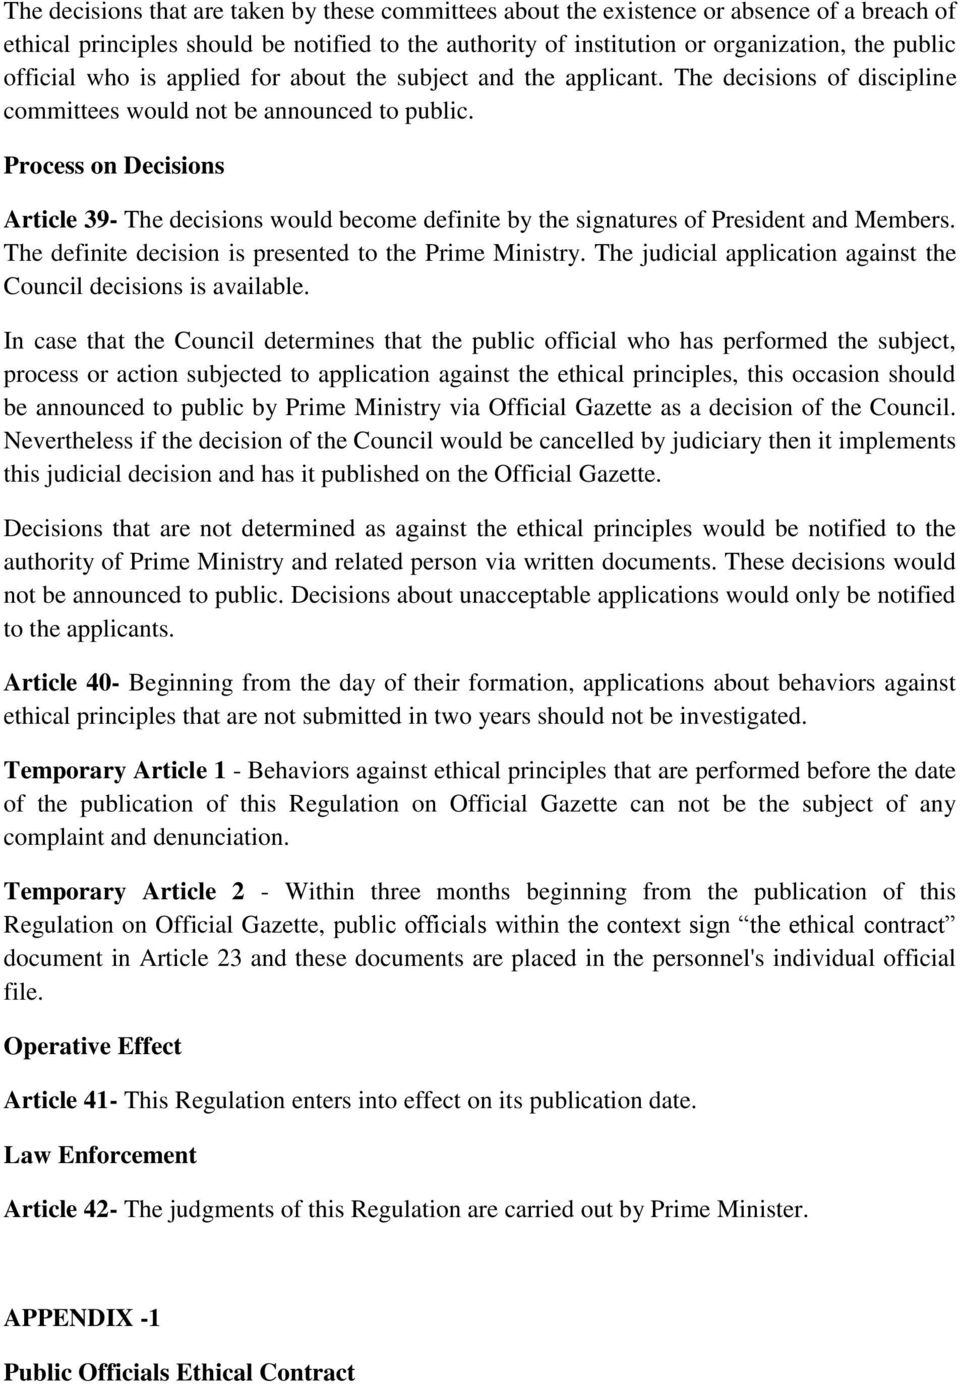 Process on Decisions Article 39- The decisions would become definite by the signatures of President and Members. The definite decision is presented to the Prime Ministry.